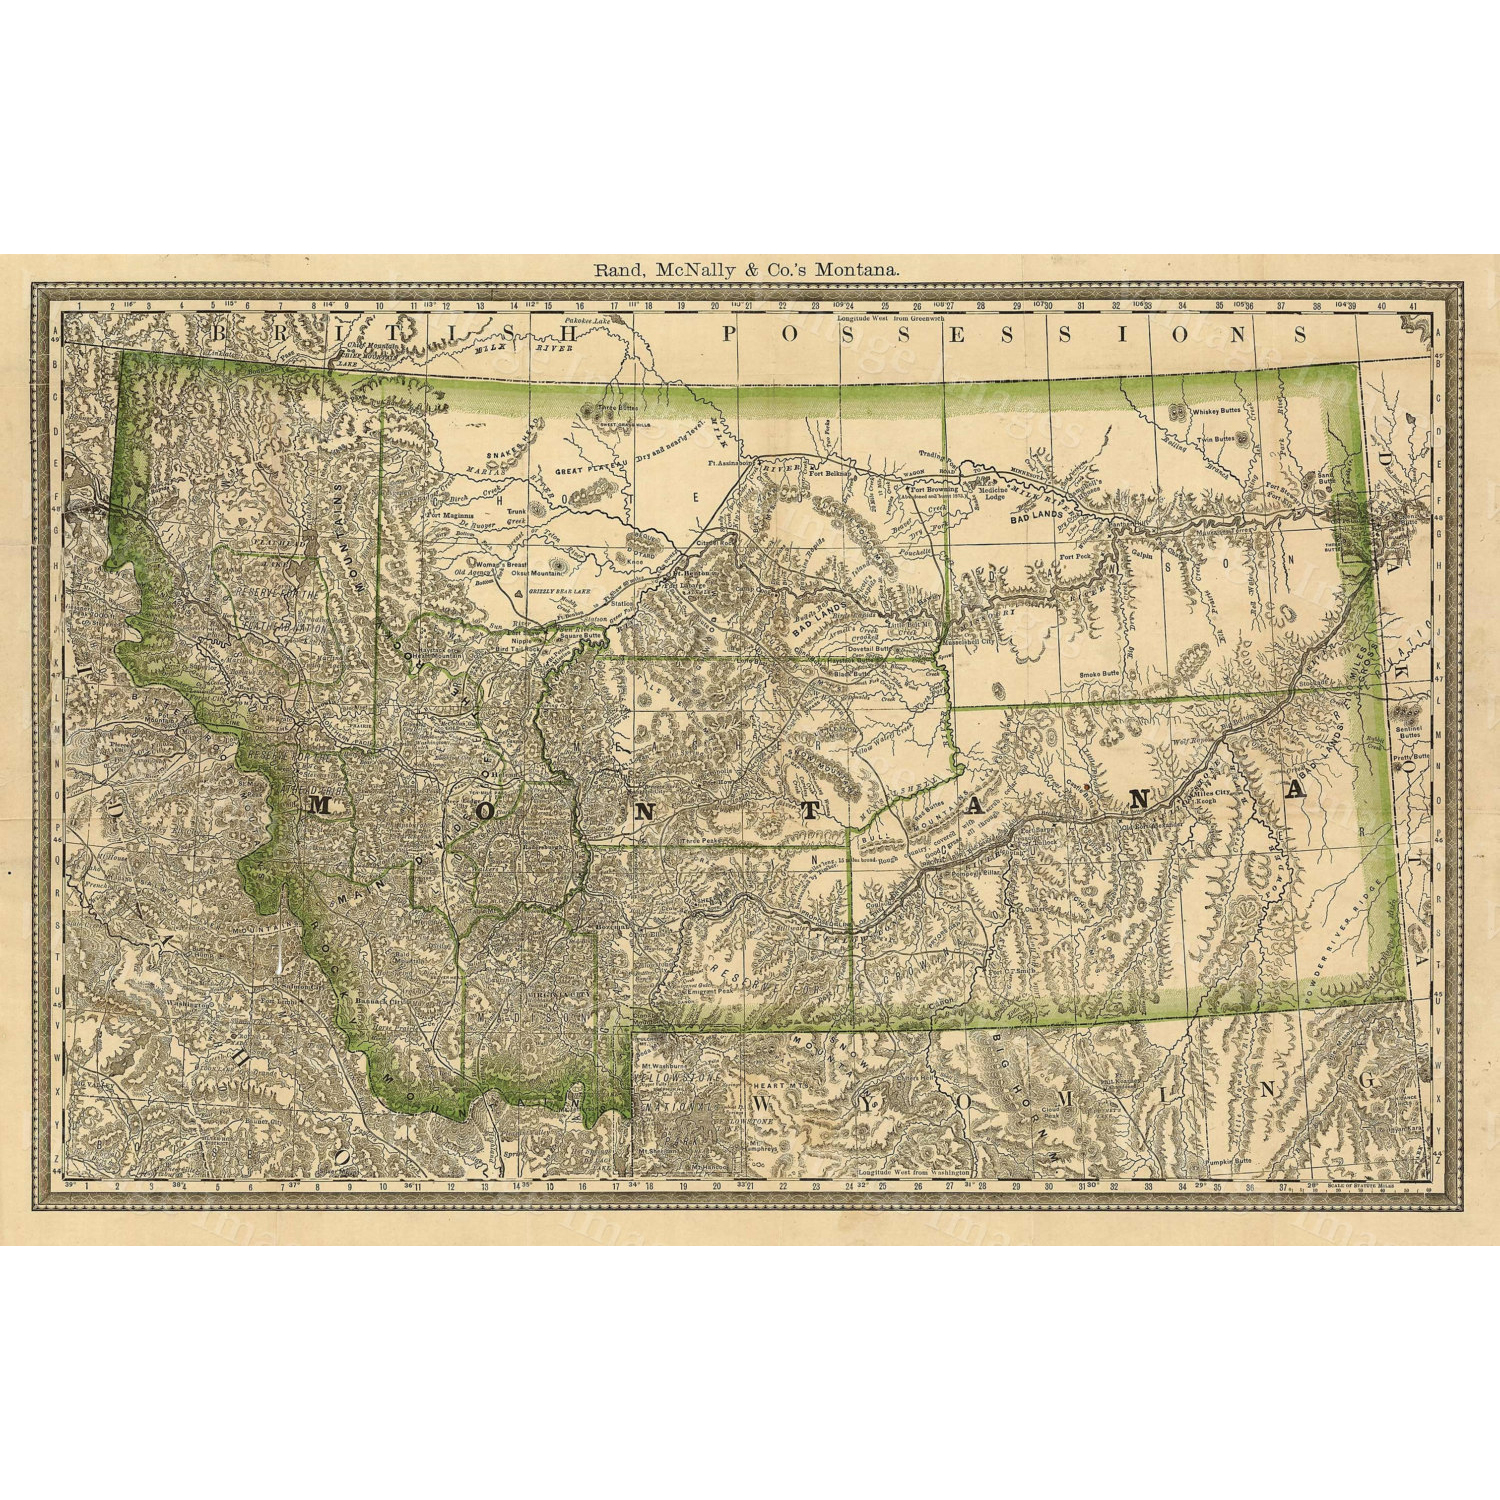 """Montana ART Map of Montana 1881 Antique Restoration Hardware Style Montana Wall map Vintage Montana state map wall art home office decor - 16\"""" x 20\"""" inches [$17.00]"""